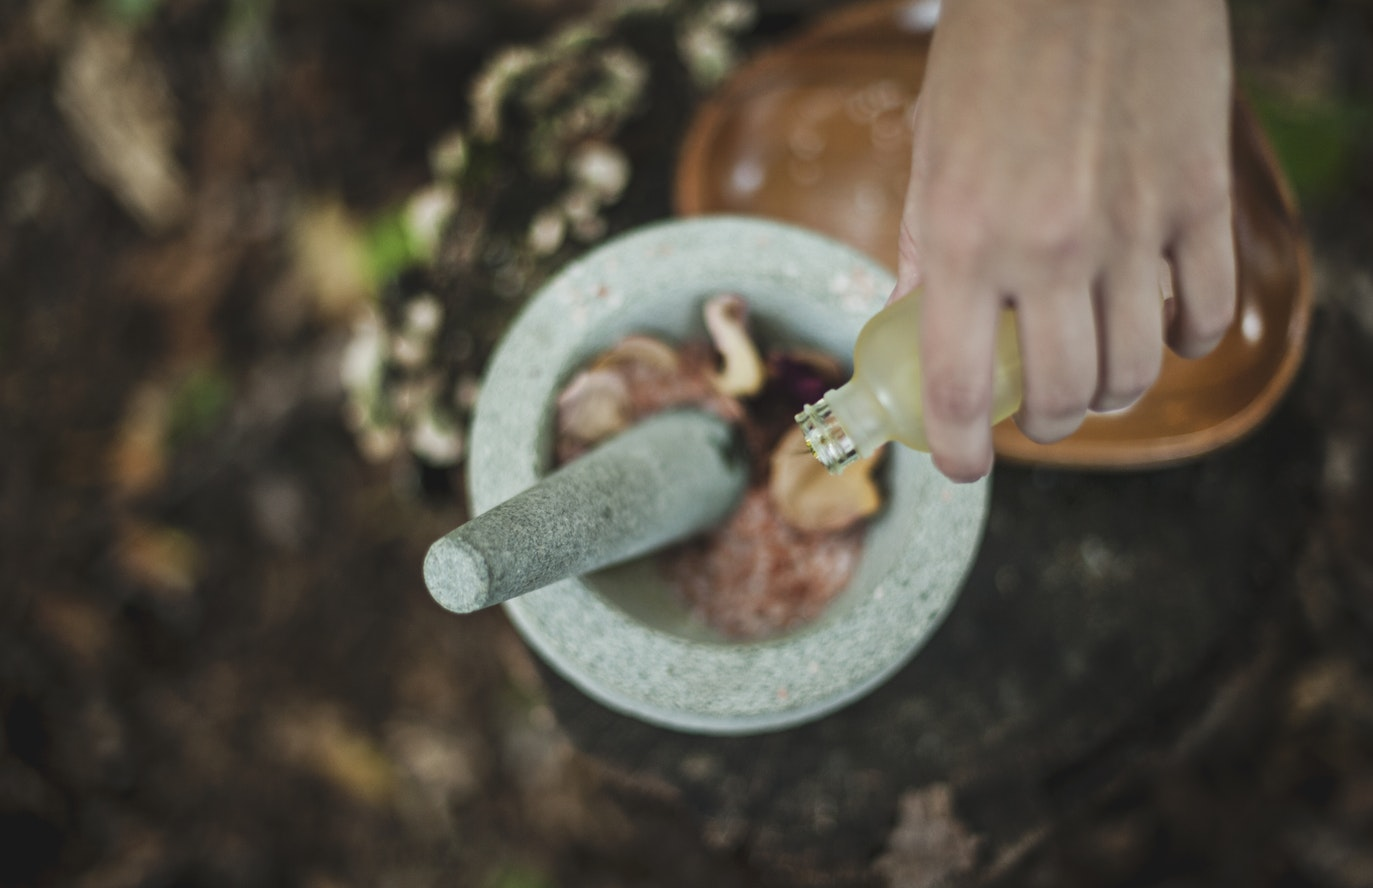 witchcrafting skin care and makeup products in pestle and mortar